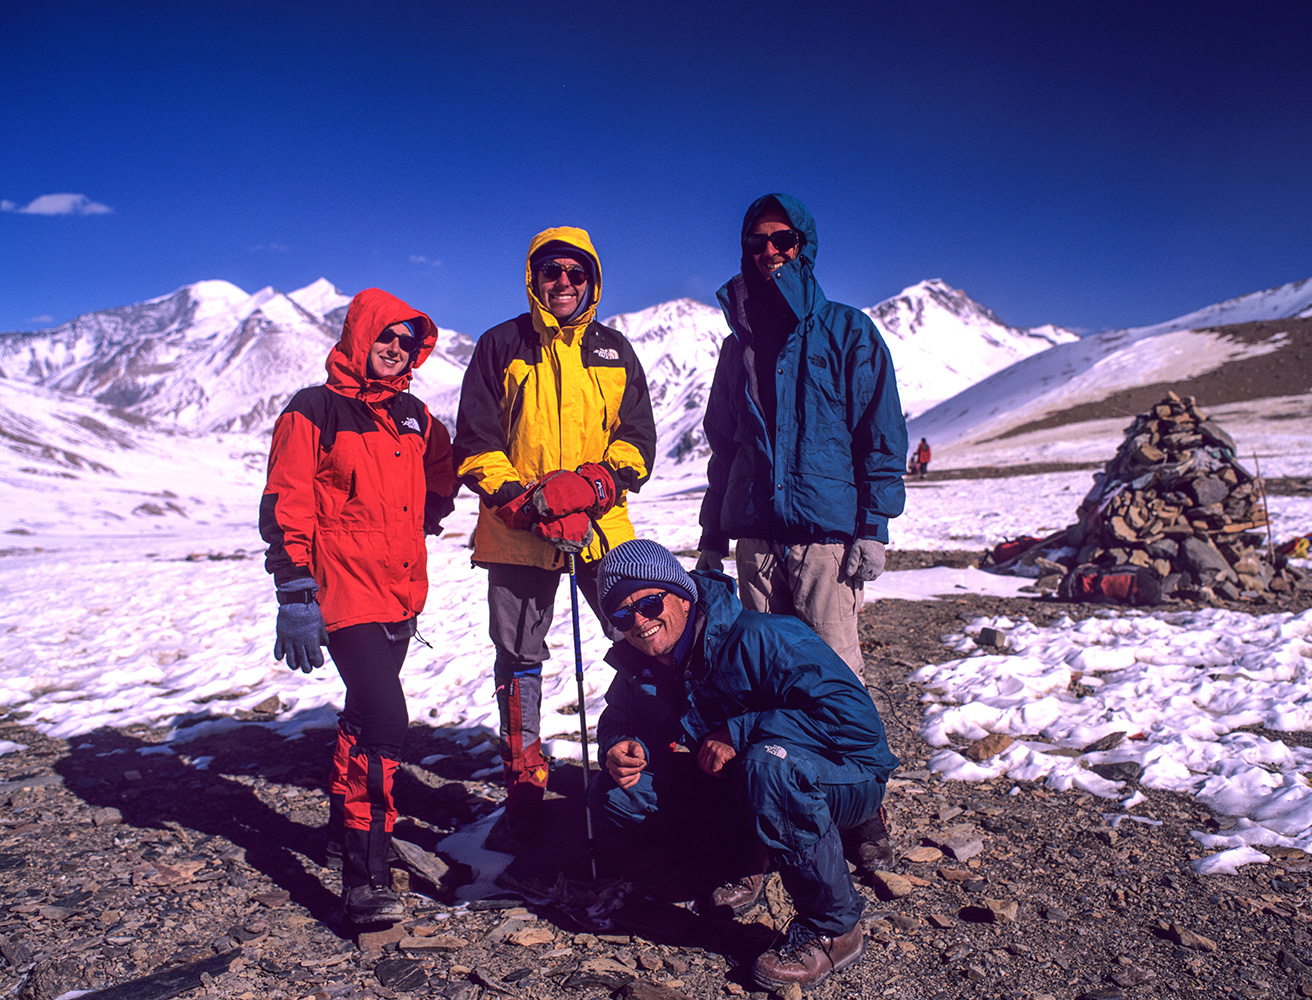 Nats Hawkrigg, Colin Wells, Rob Riddell & Steve Razzetti on French Pass in December 1998Bronica ETRSi, 50mm, Fuji Velvia